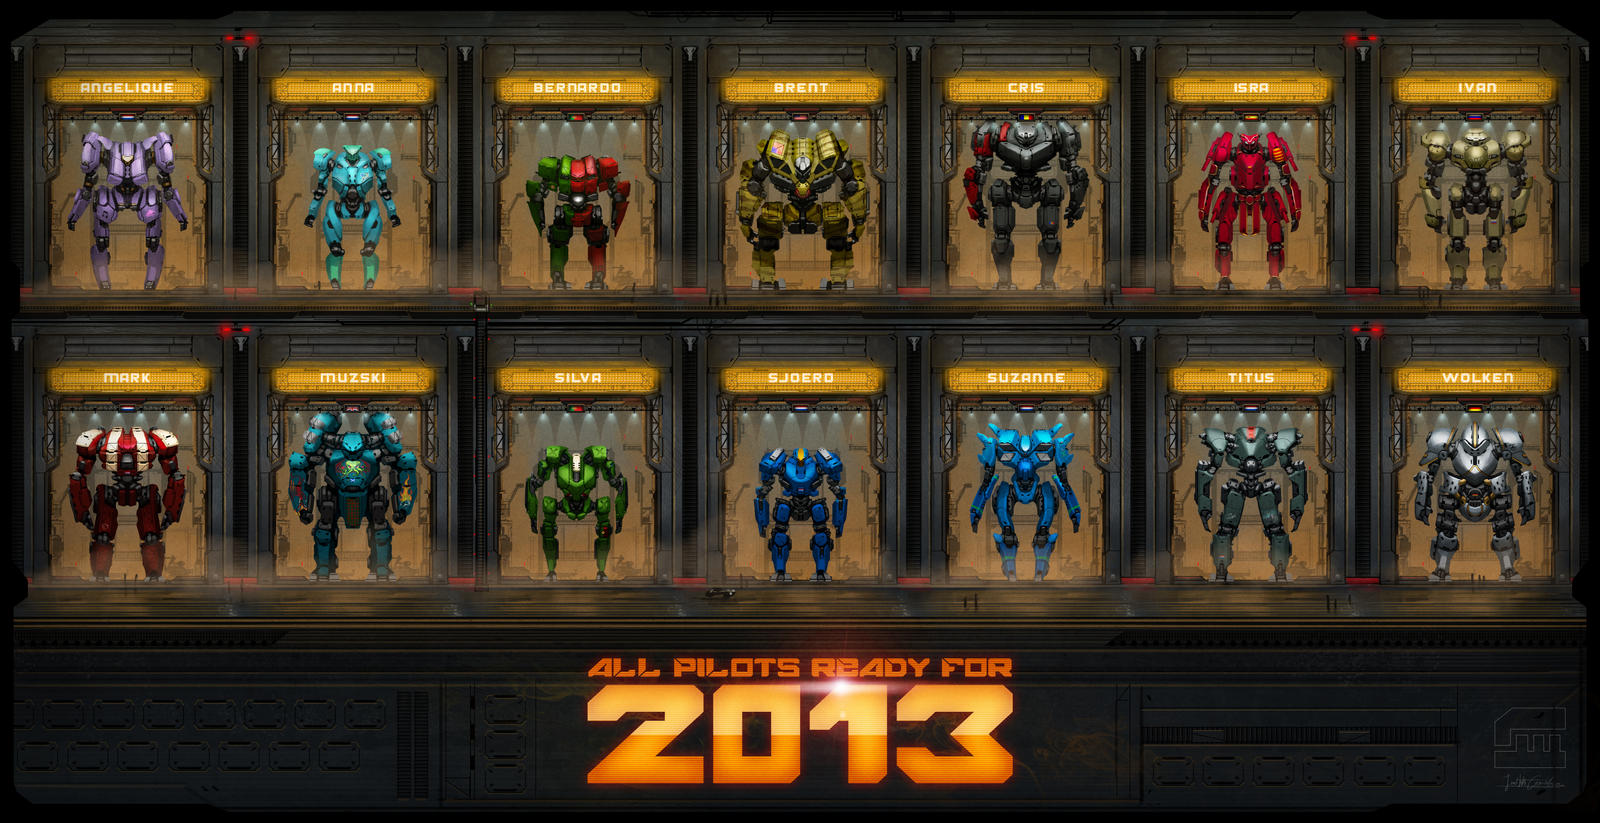 Ready for 2013 by BrotherOstavia